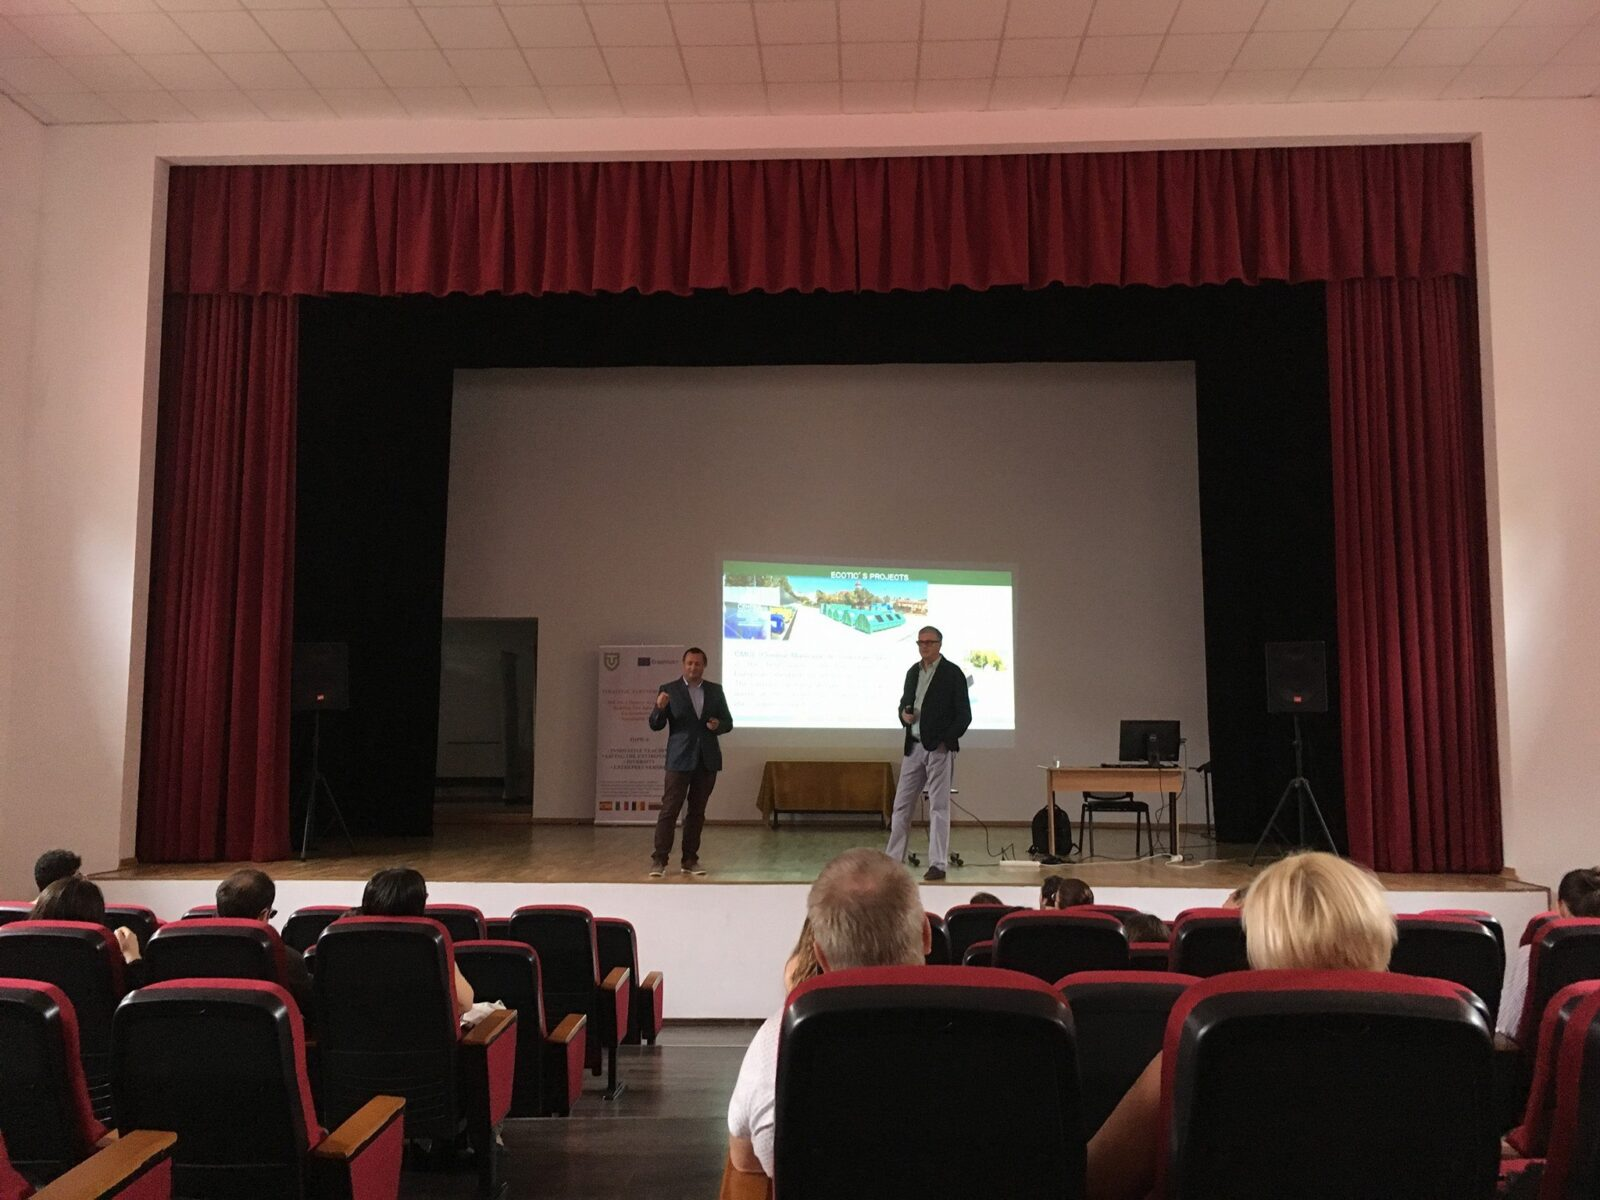 ECOTIC VISITED THE TUDOR VIANU NATIONAL COLLEGE OF COMPUTER SCIENCE